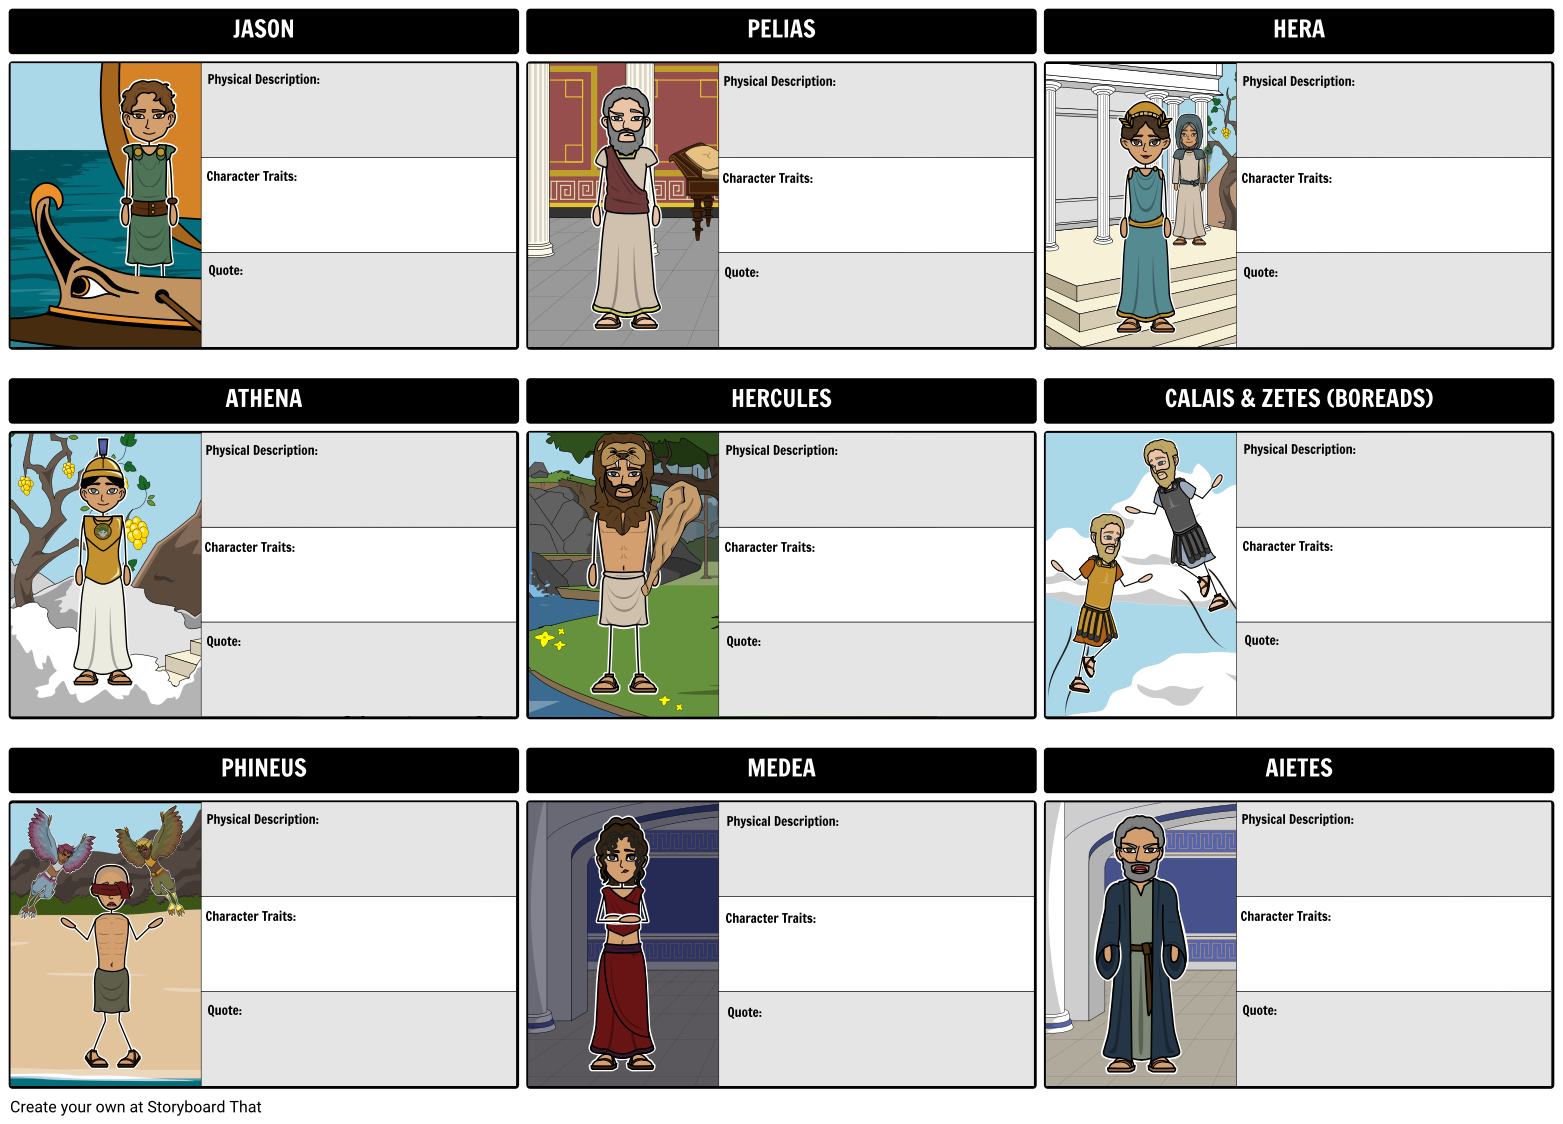 Jason and the golden fleece characters keeping track of jason and the golden fleece characters keeping track of characters in greek mythology can be biocorpaavc Choice Image